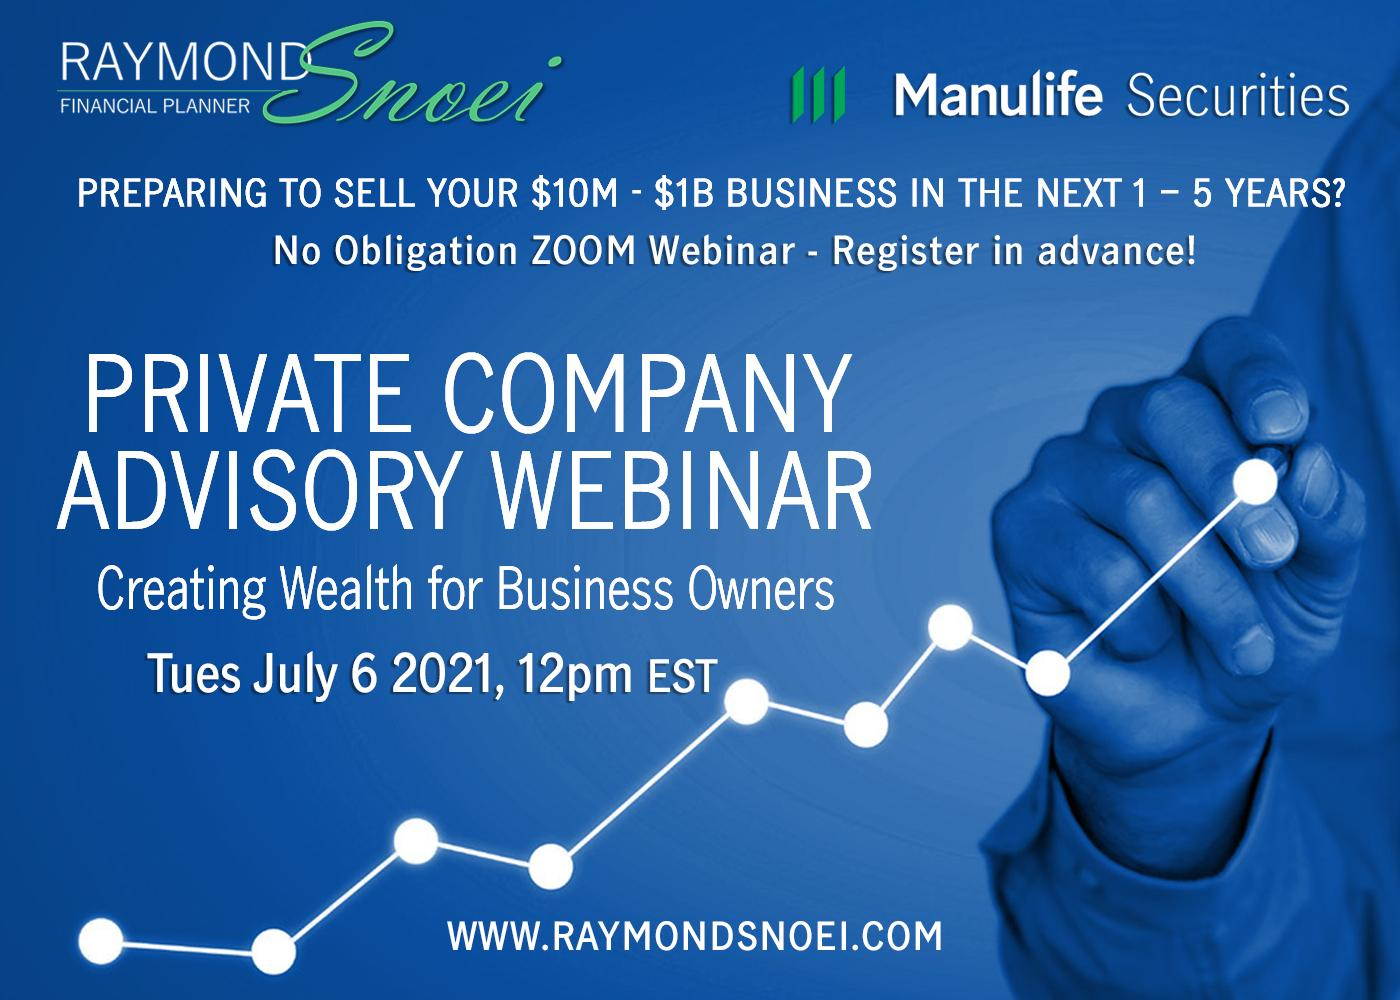 Private Company Advisory - Creating Wealth for Business Owners (webinar) Thumbnail